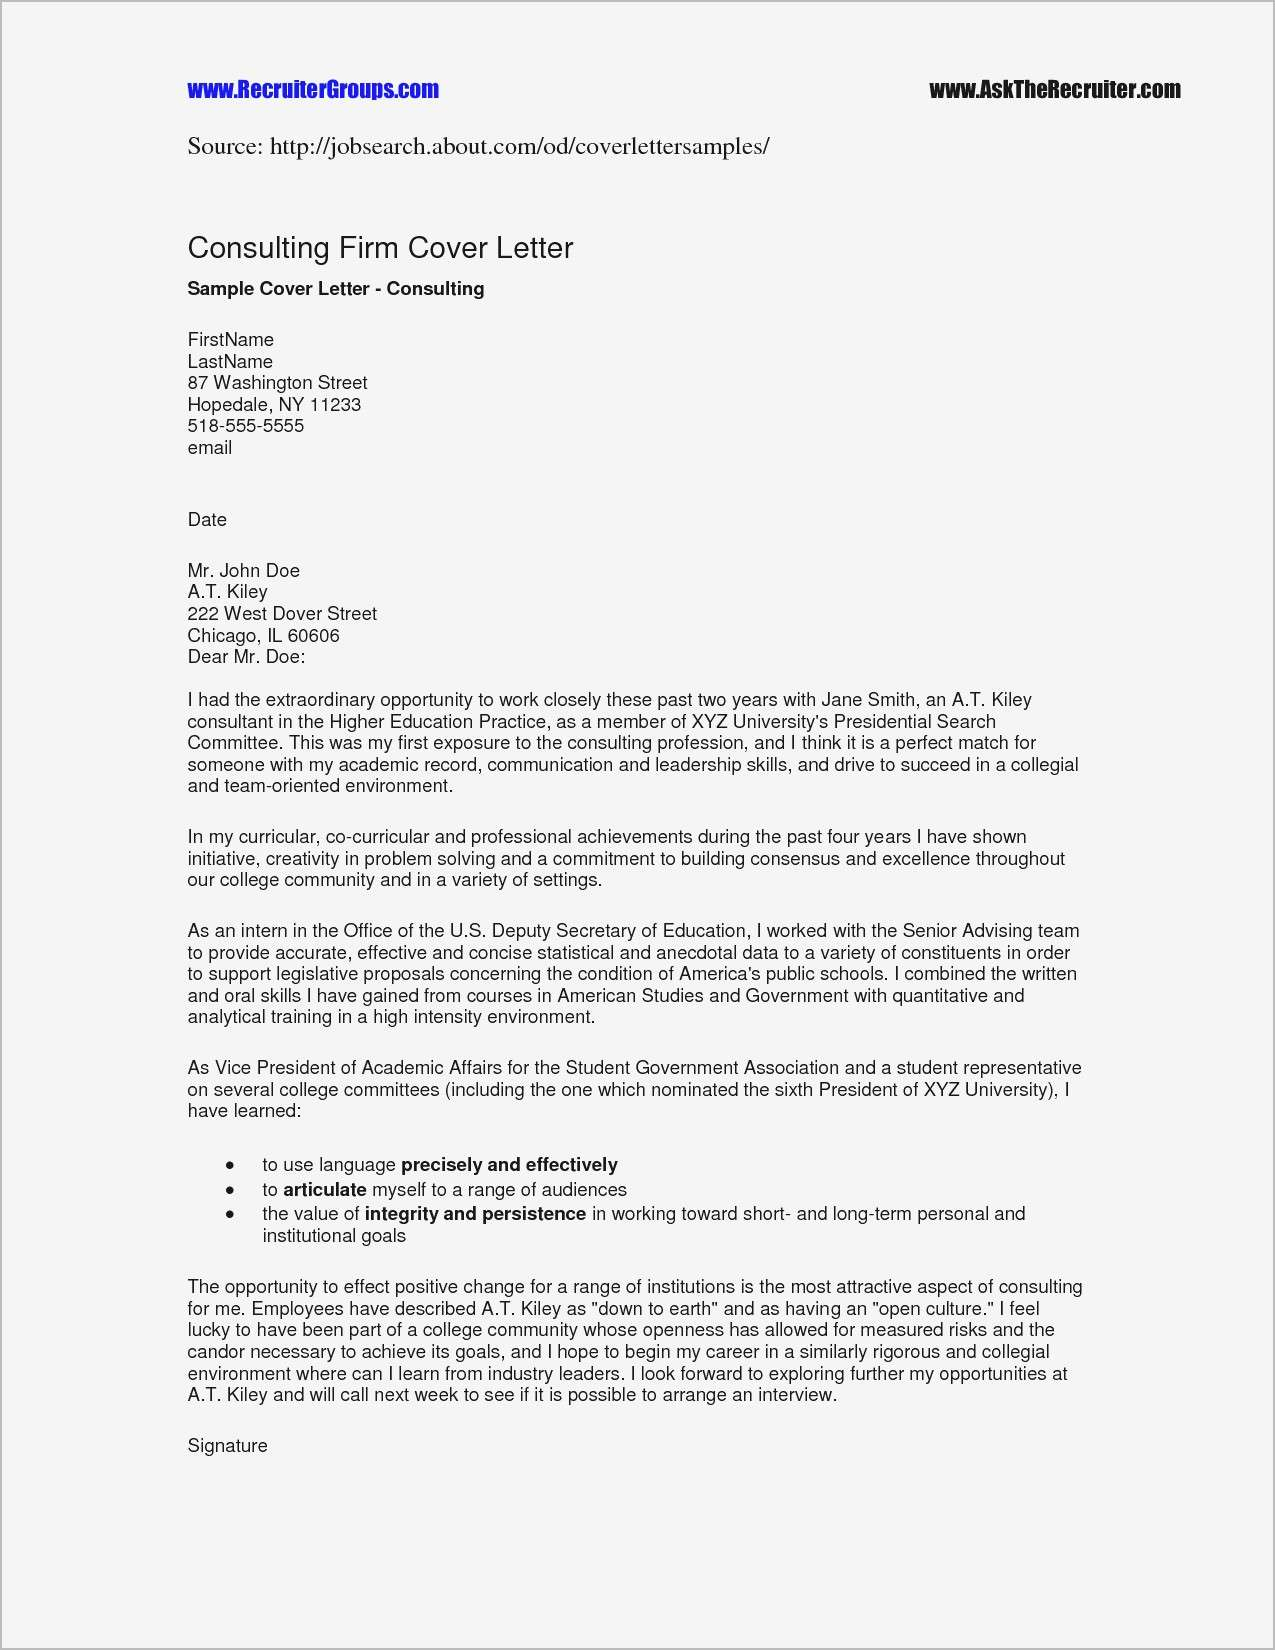 Cover Letter Template Pdf - Example Cover Letter for Job Application Pdf format Zgofkxs